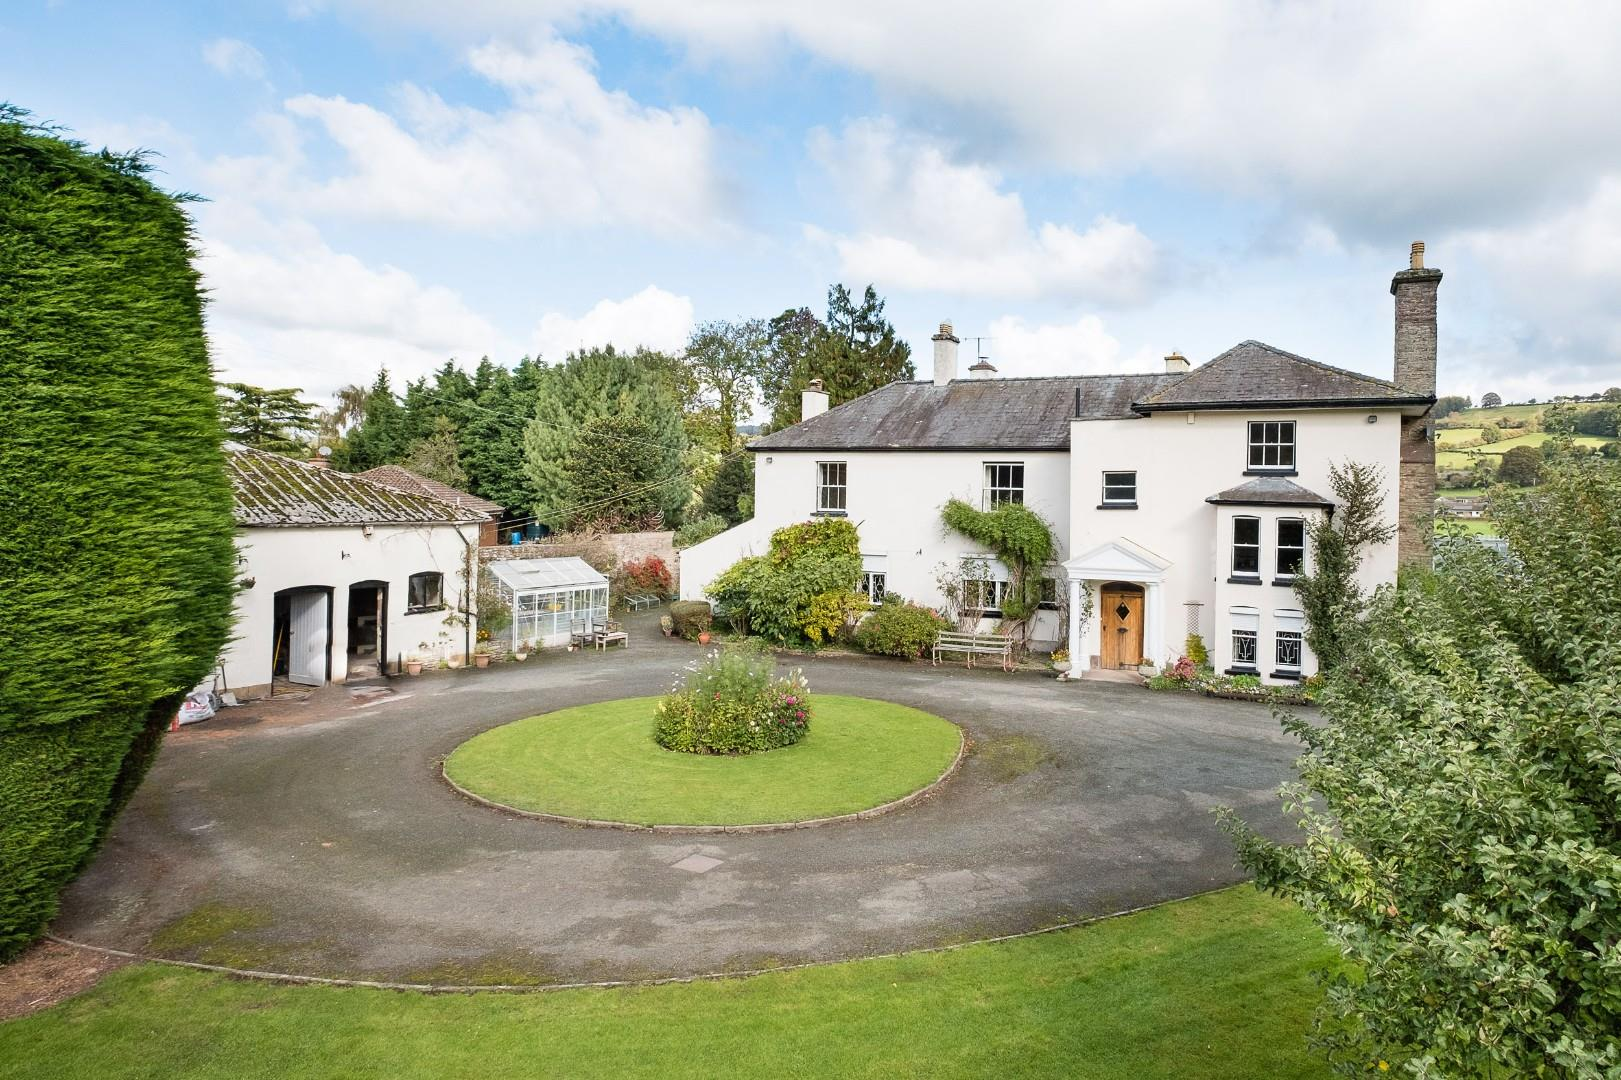 Peterchurch, Herefordshire - 1.28 acres